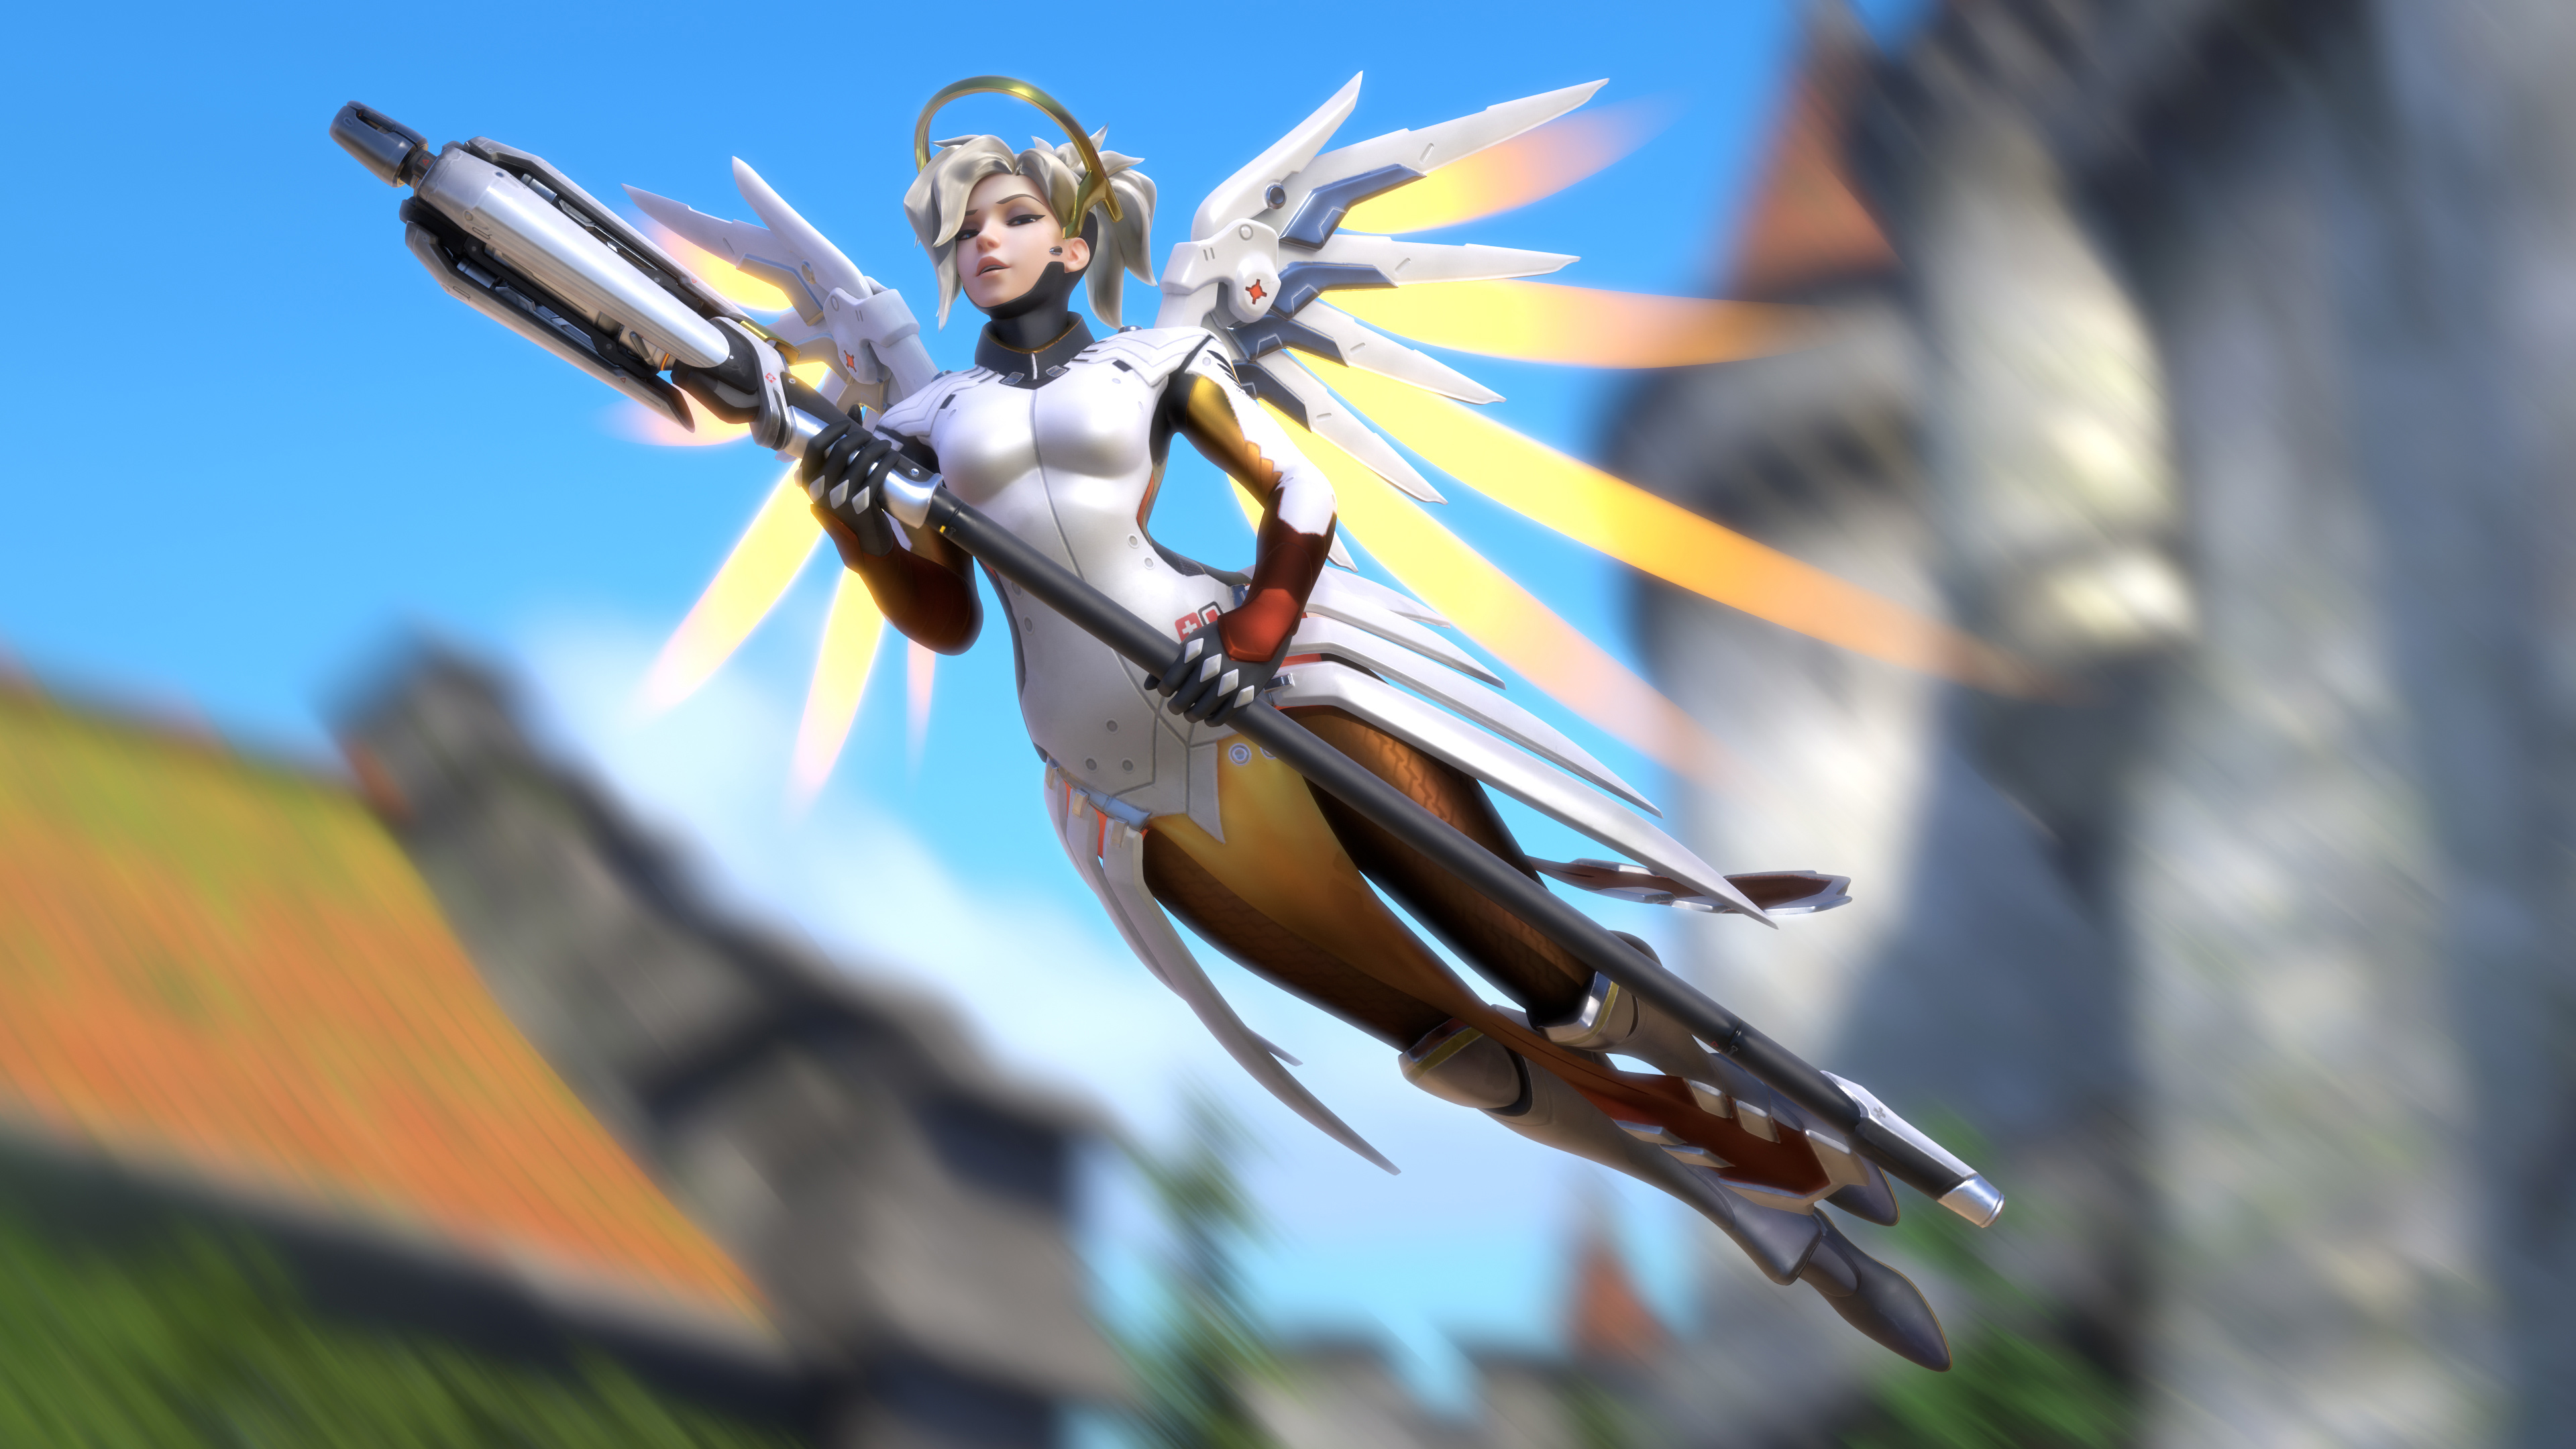 Overwatch mercy artwork. обои скачать